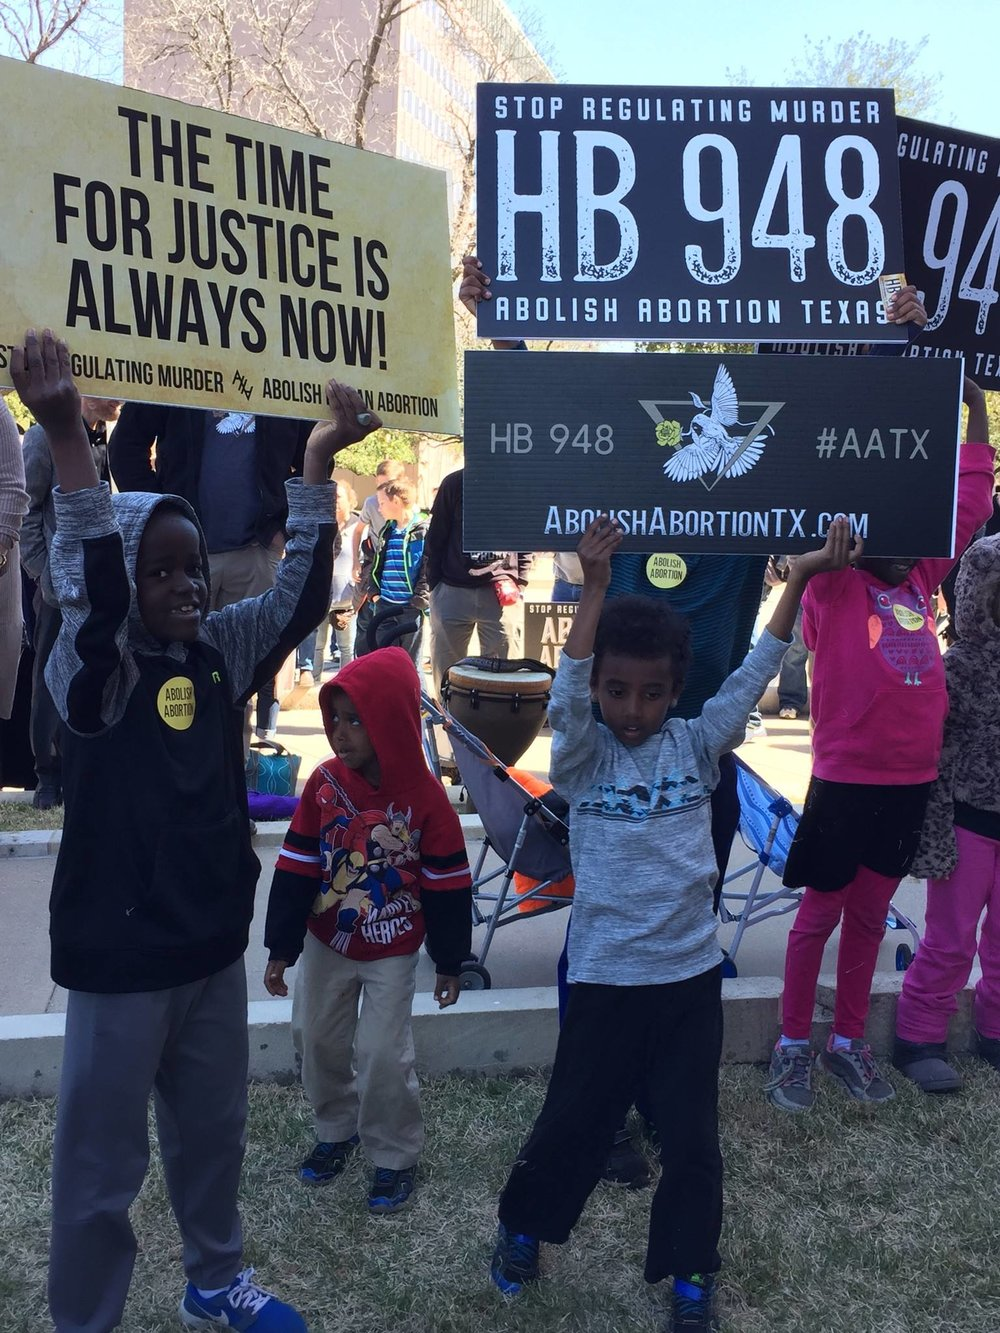 Abolitionist Cody May's sons standing for justice at the HB948 Abolition of Abortion in Texas Act Rally on 2/25/17. Cody went to be with the Lord suddenly and tragically less than a month earlier. He leaves behind his brave wife Kimberly, their seven children (six adopted on missions to Ethiopia) and a legacy of raising the rising generation as the City on a Hill in our darkened culture. CLICK THE PHOTO TO SUPPORT